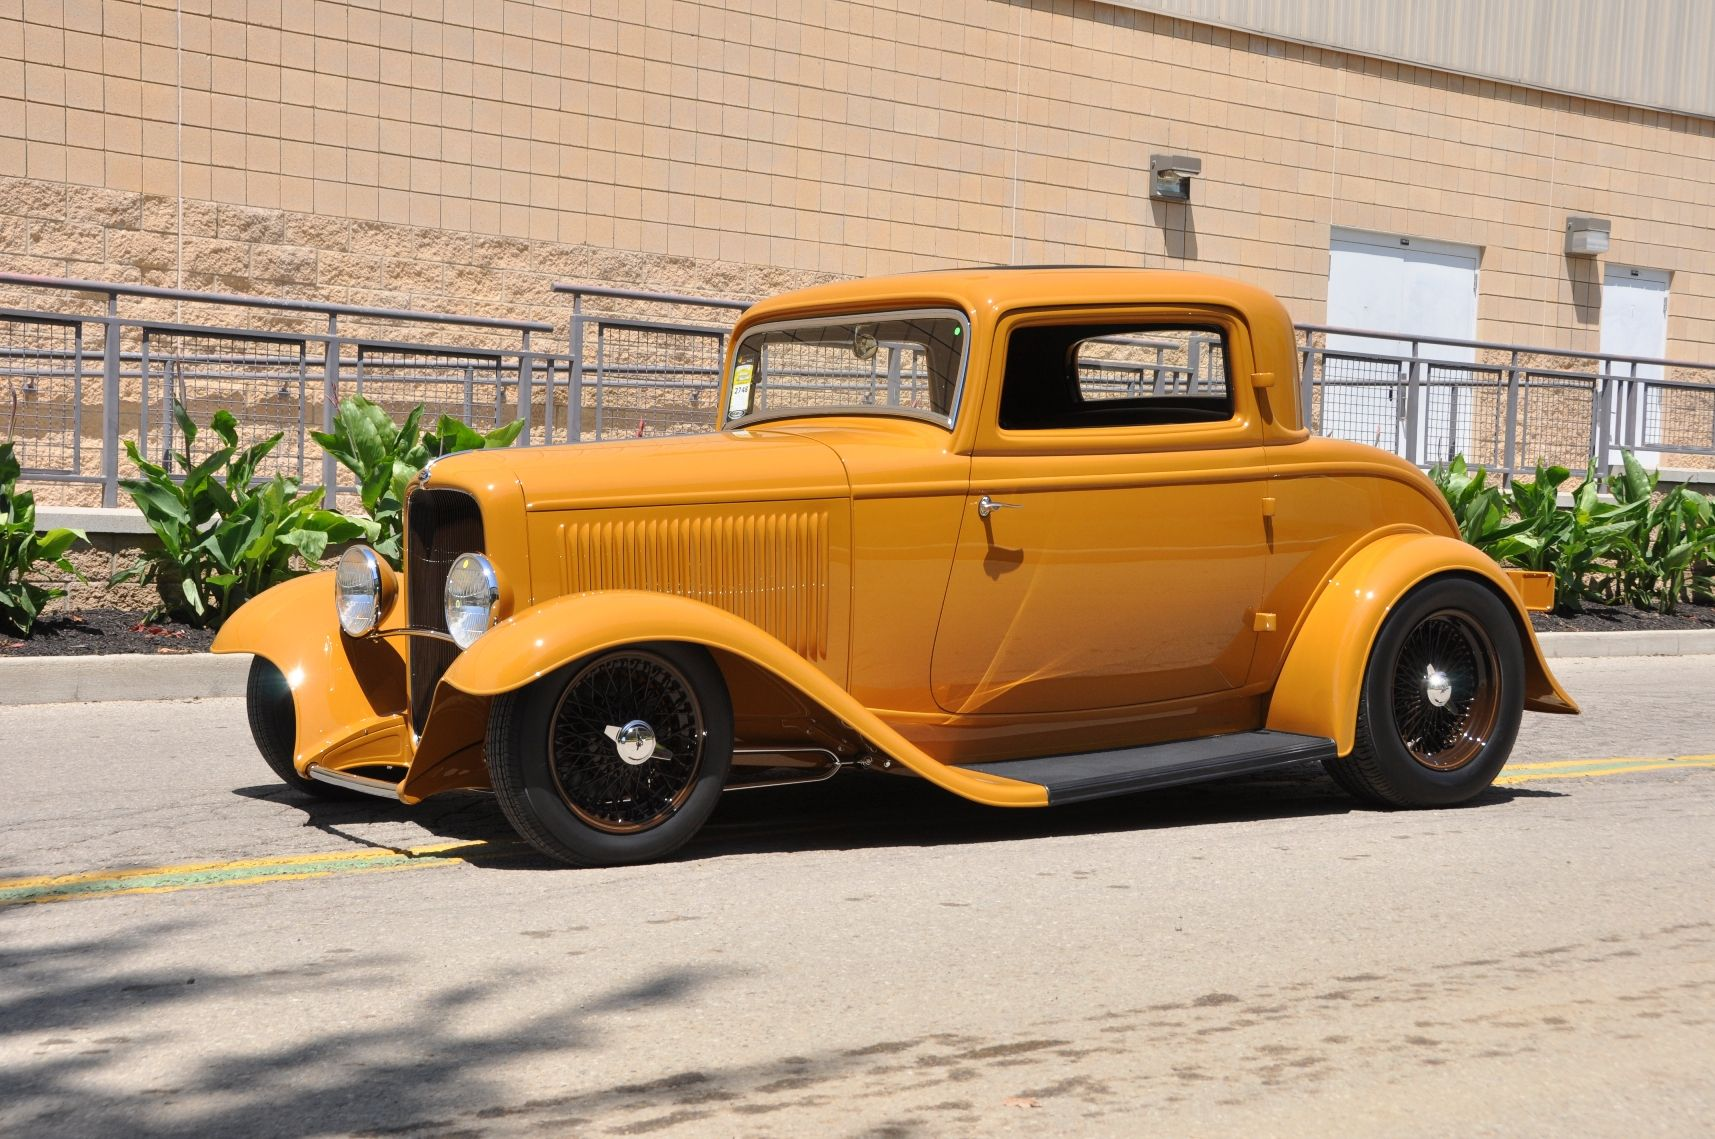 1932 Ford 5 window coupe slammed wire wheels full fendered and